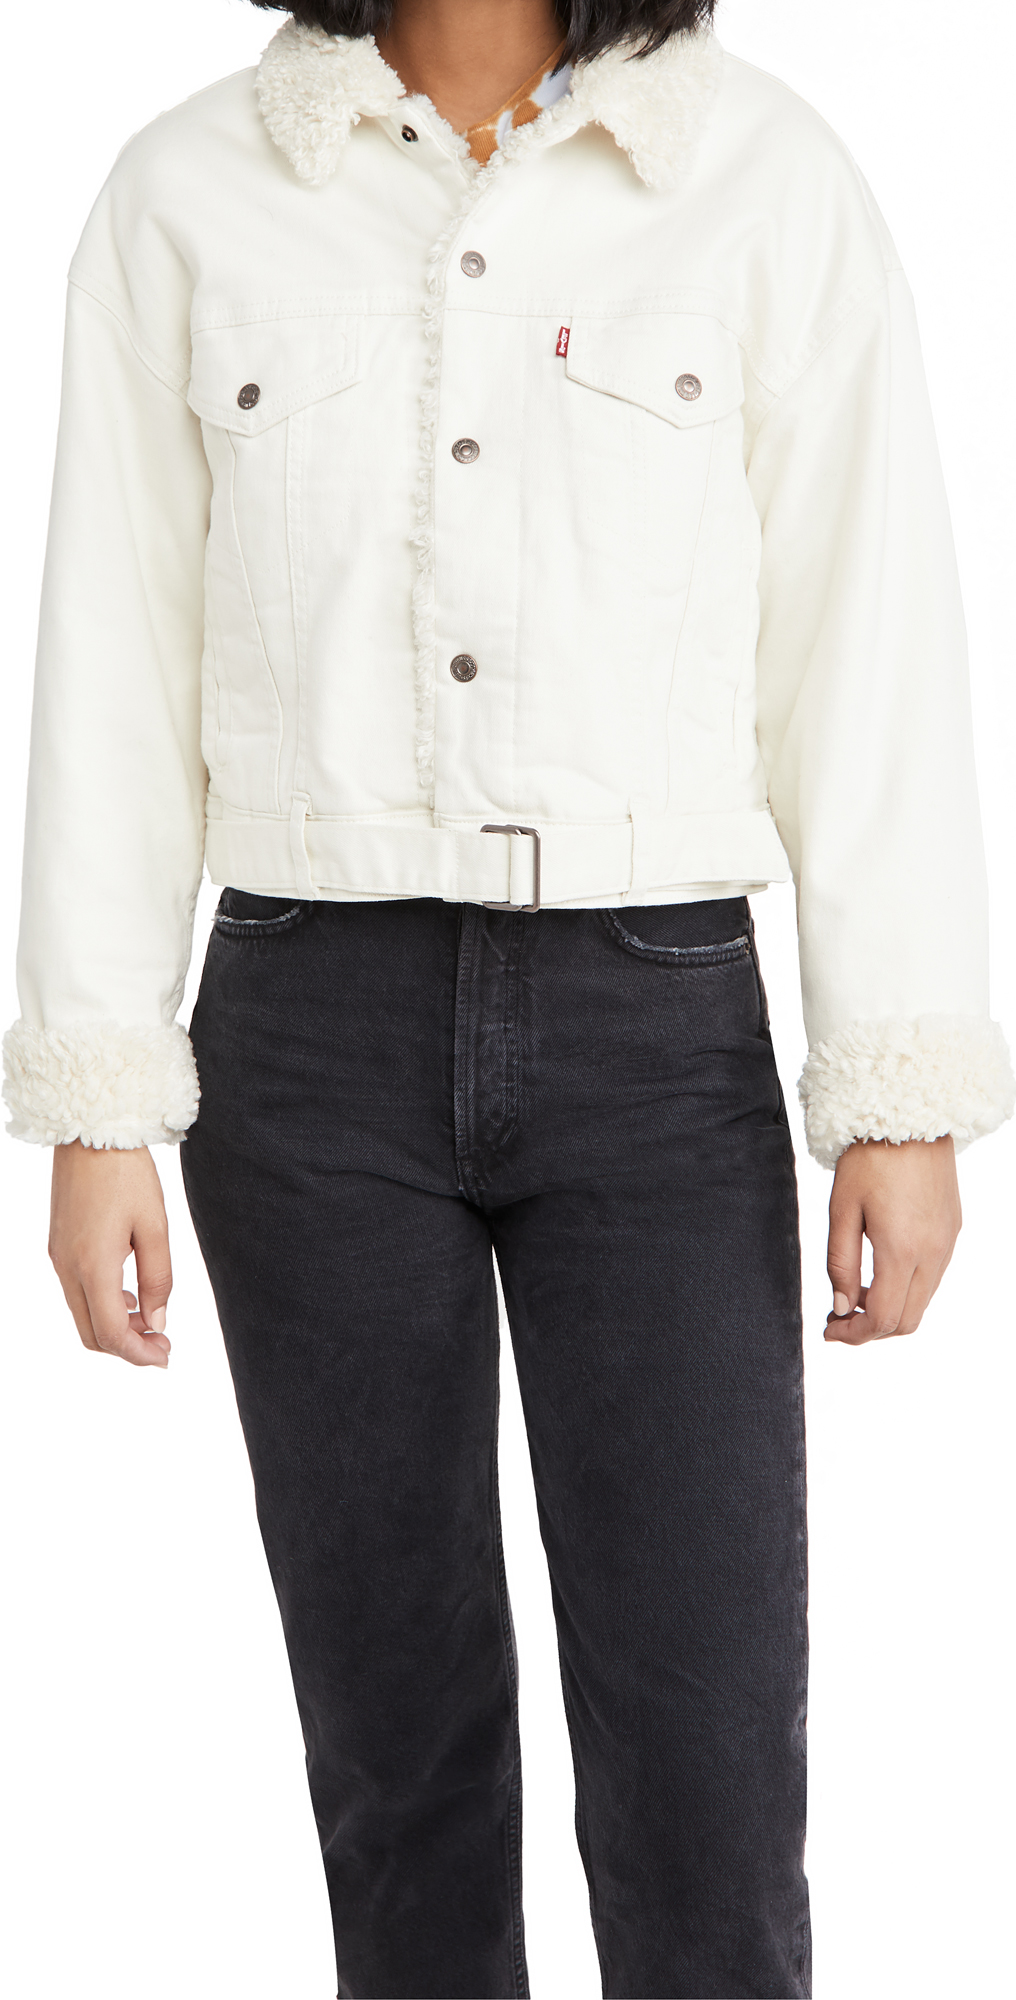 Levi's Cozy Cocoon Trucker Jacket